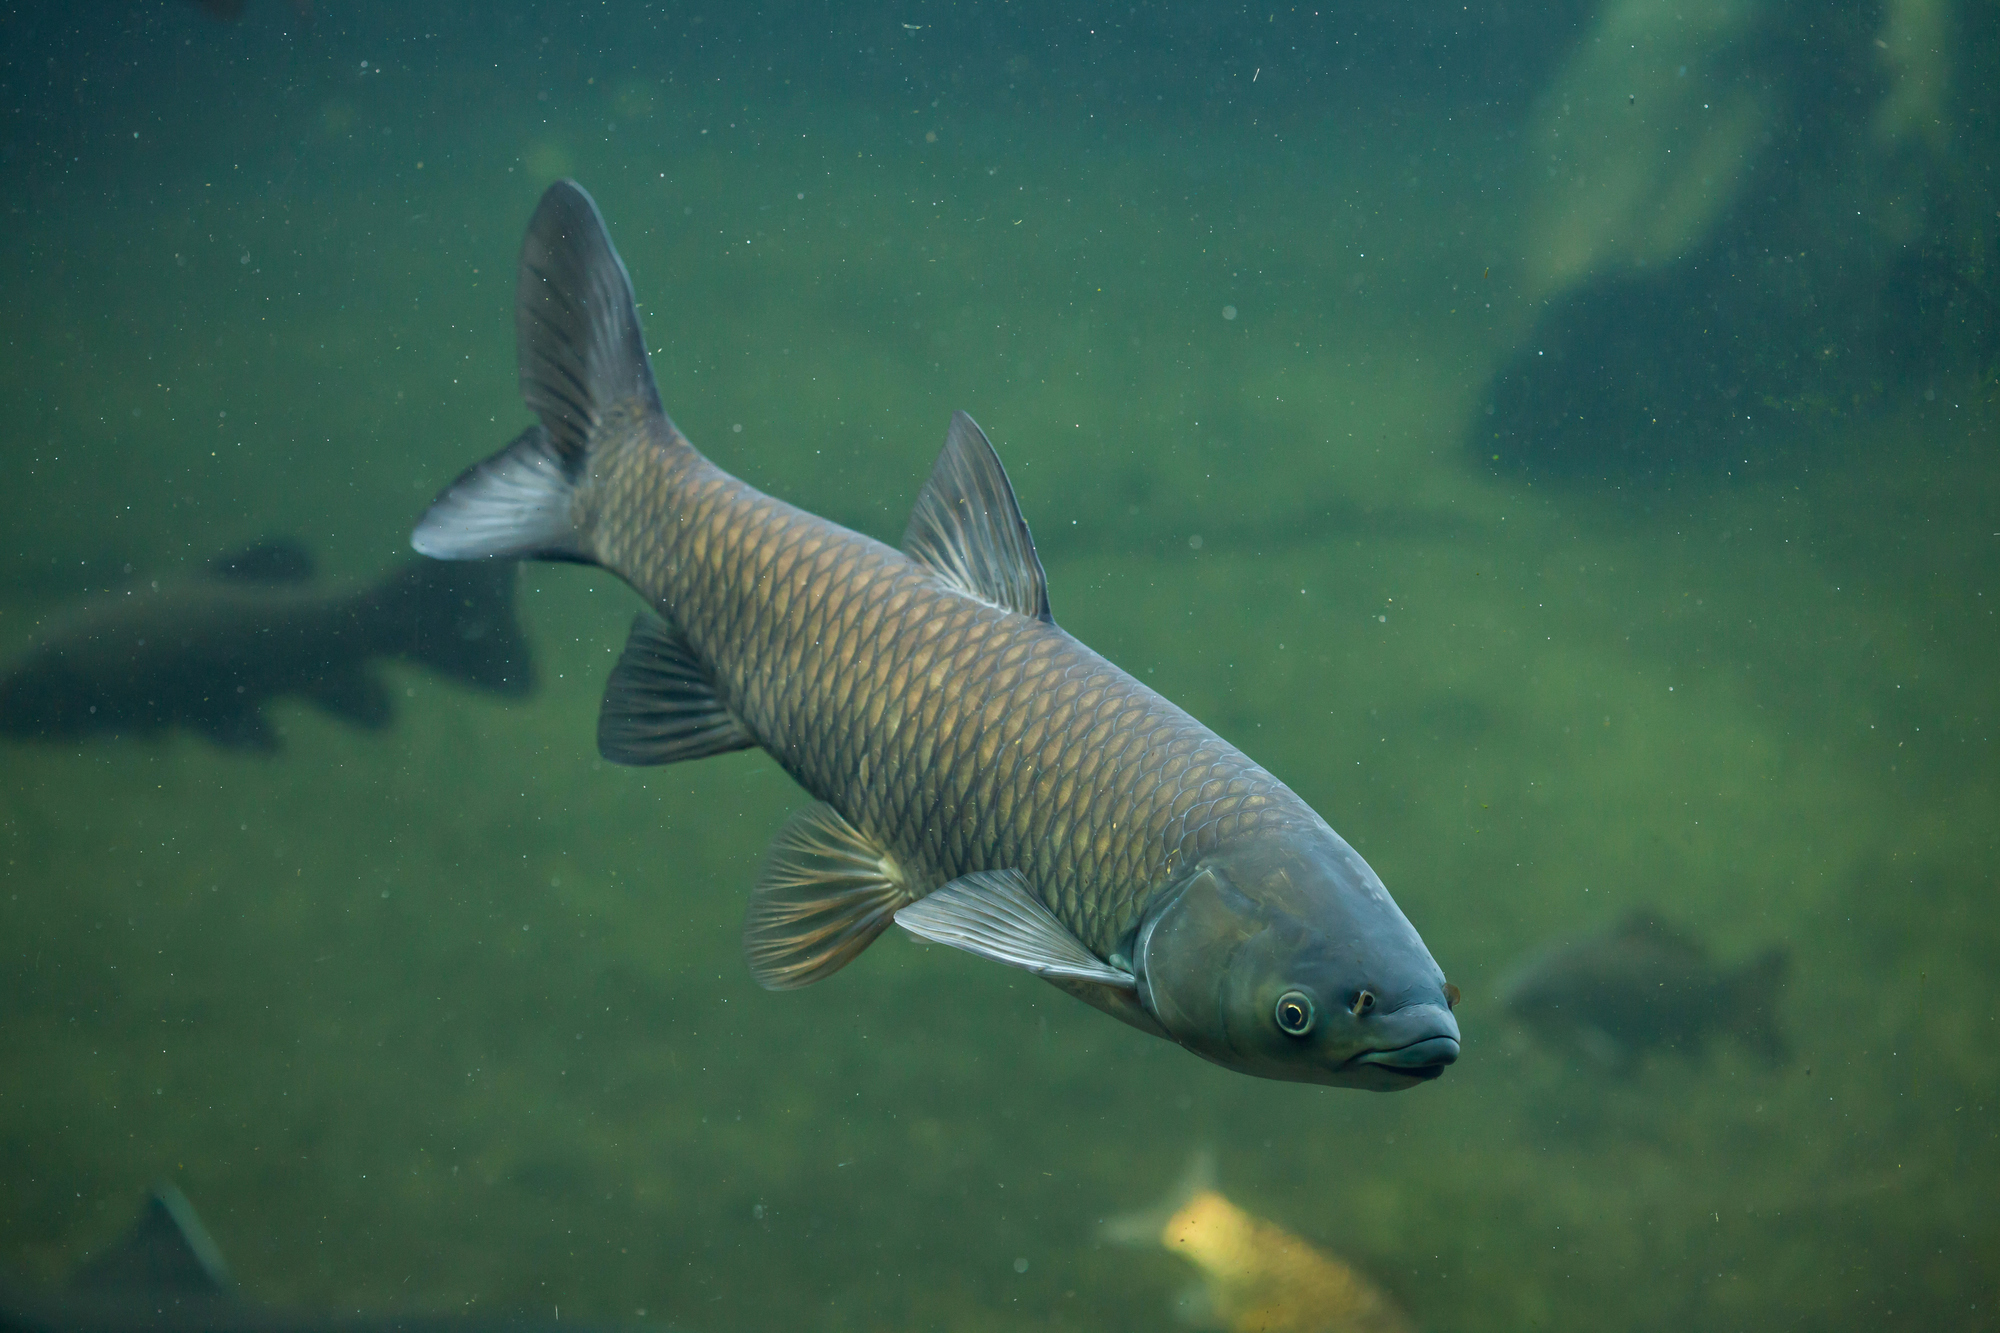 A grass carp, one of Wisconsin's most prominent and highly-destructive invasive species, swims in a river.